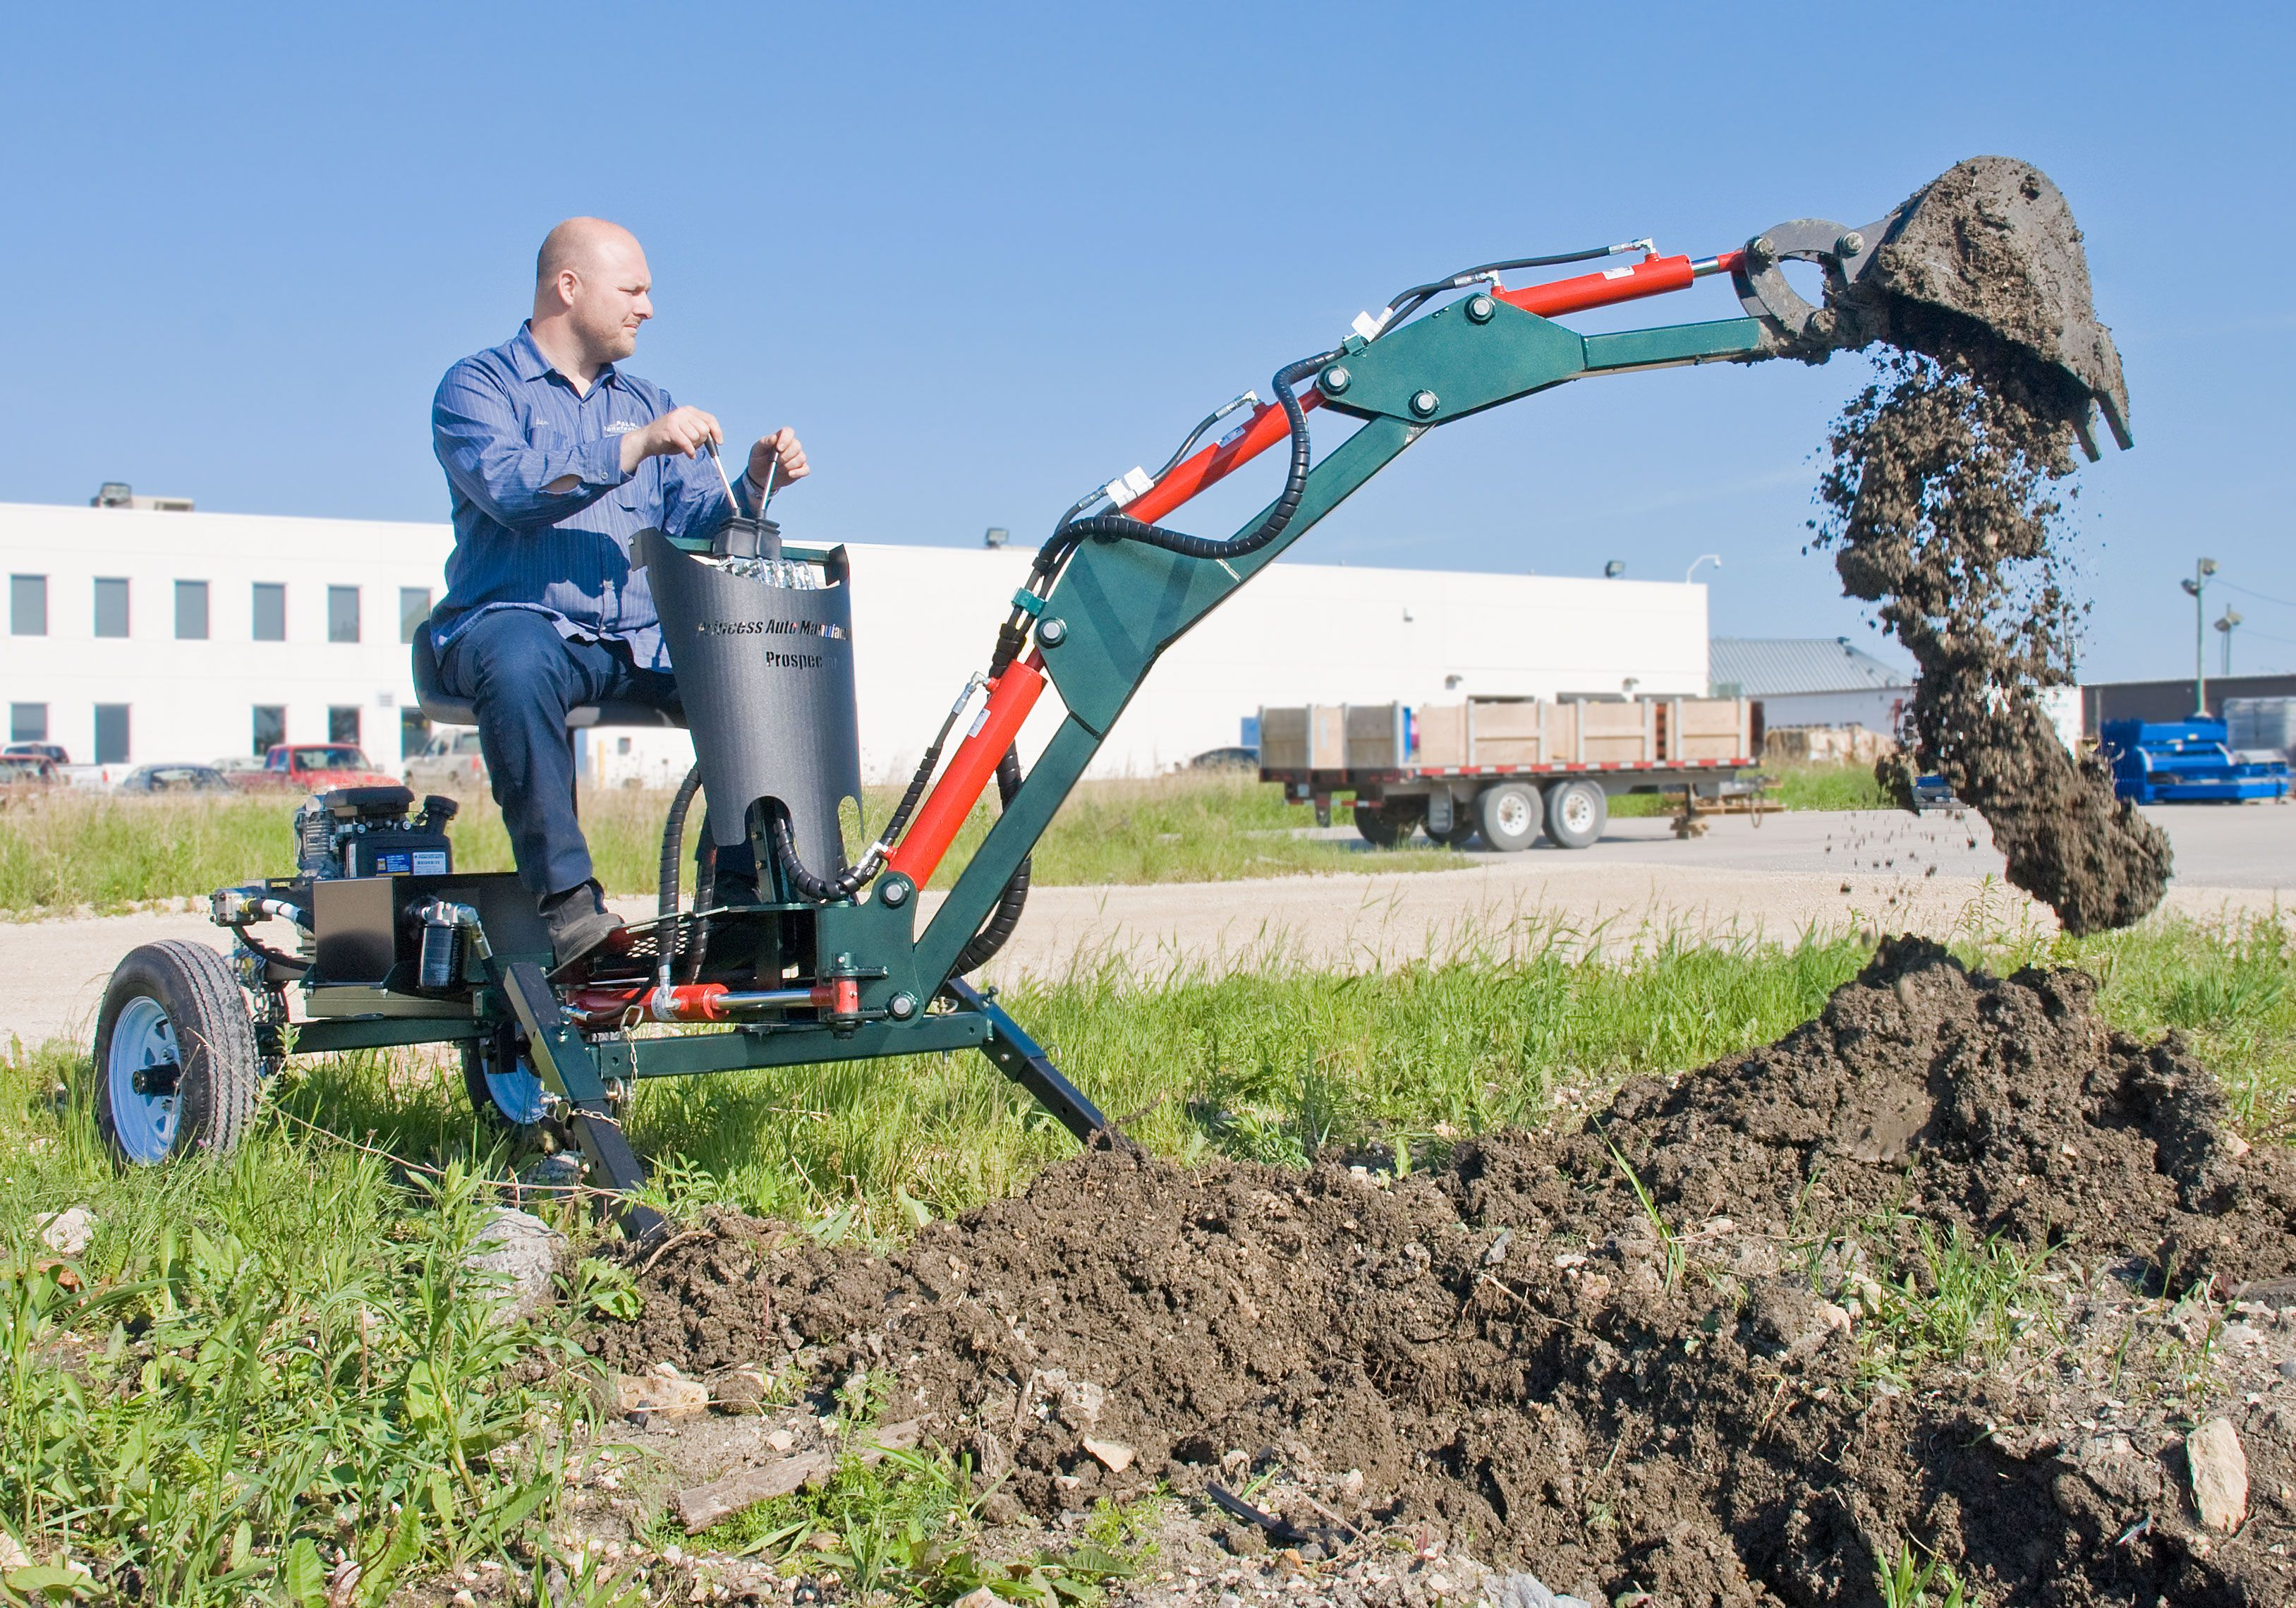 prospector towable excavator special order cool gadgets for